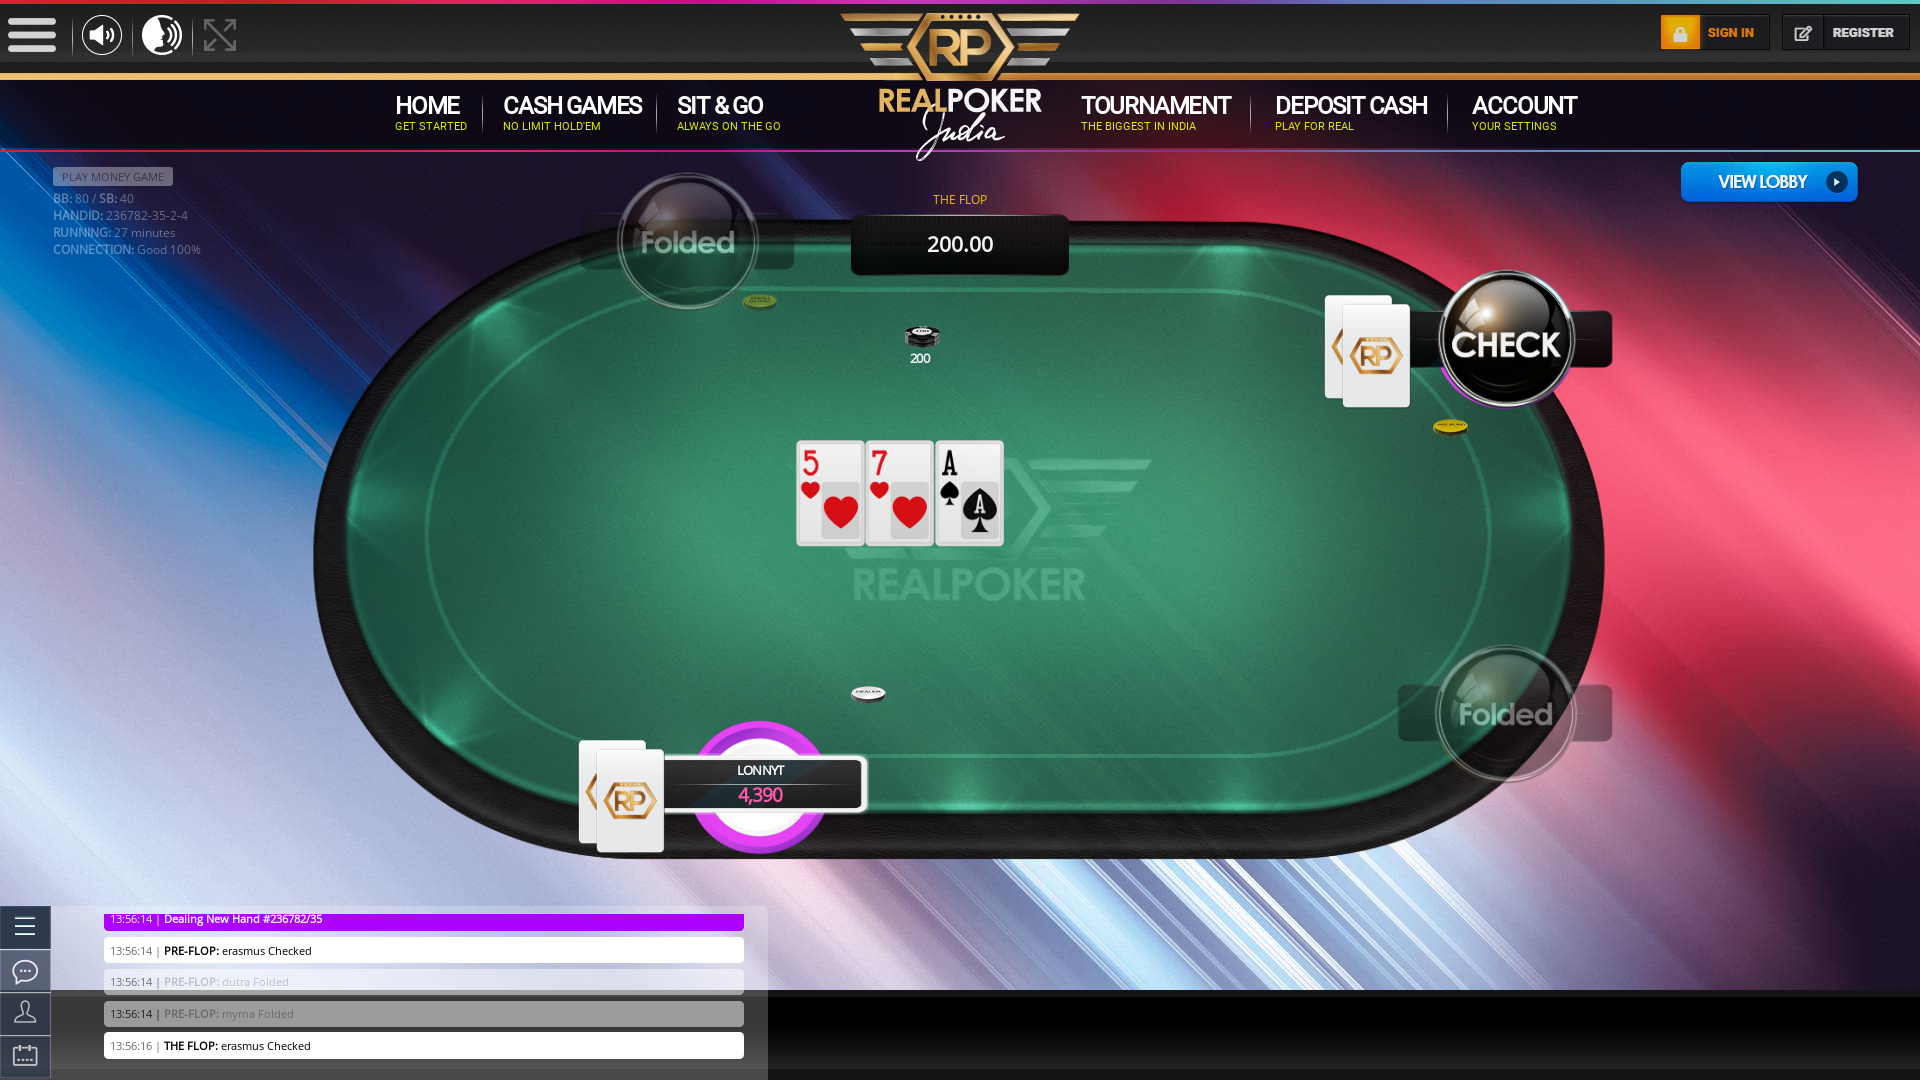 Real poker on a 10 player table in the 27th minute of the game